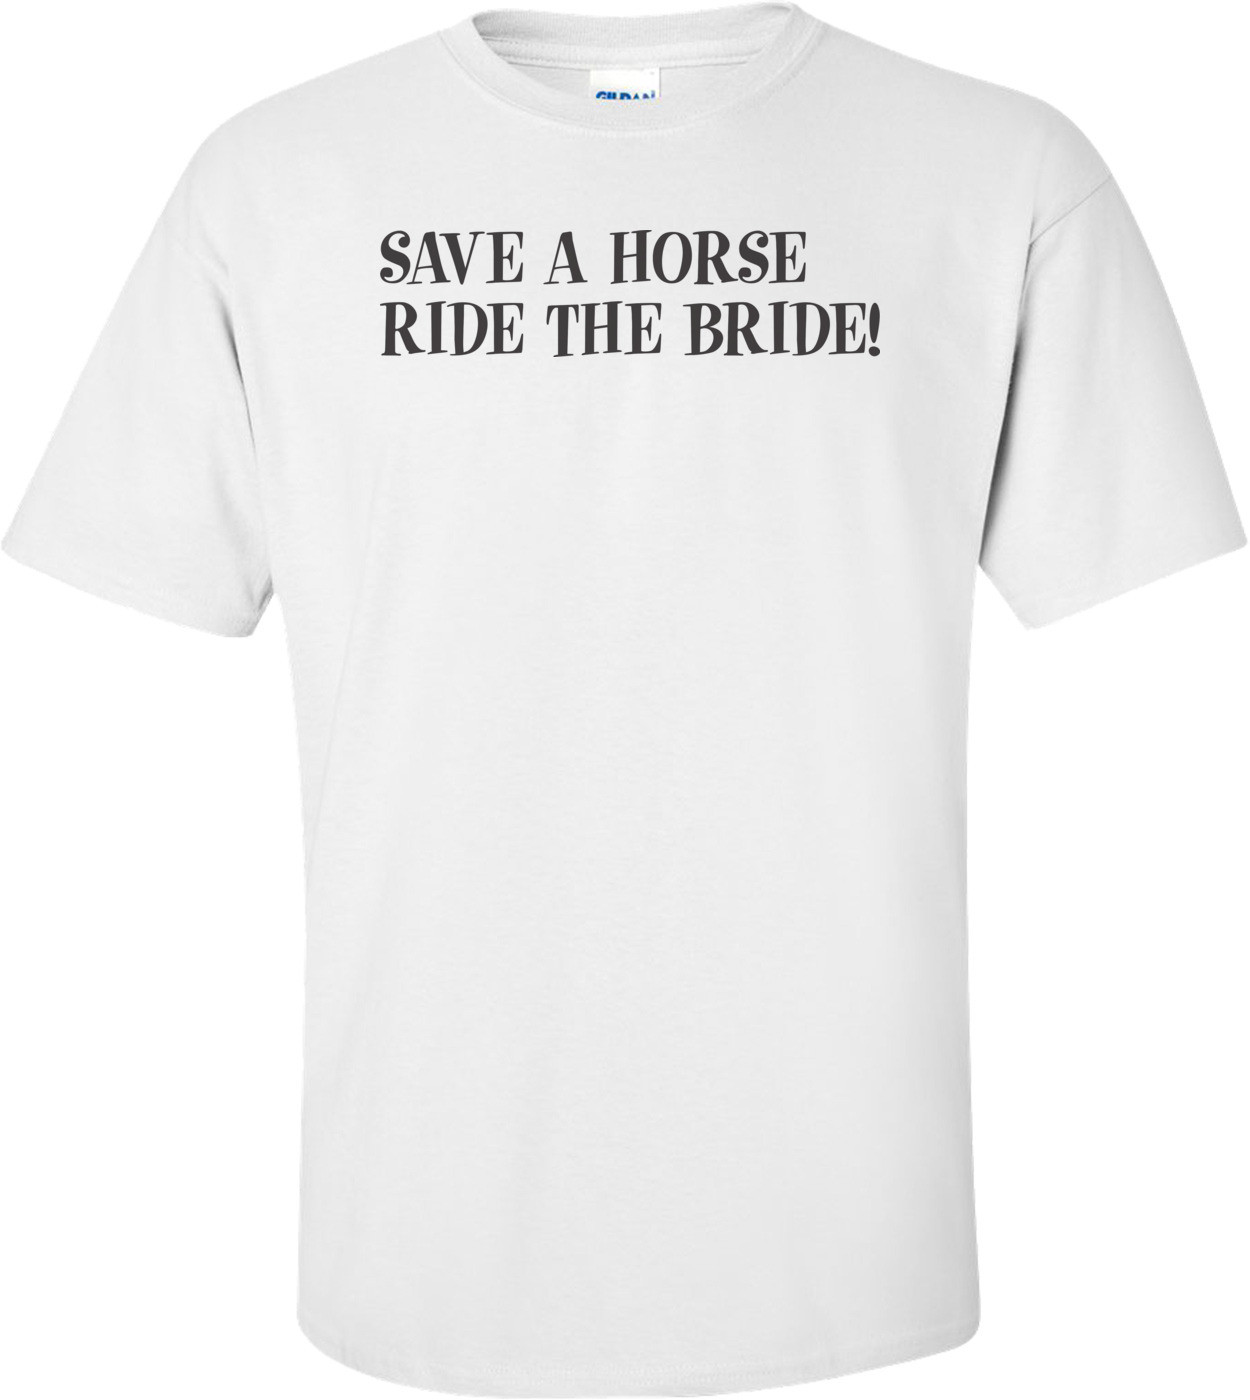 Save A Horse Ride The Bride T-shirt